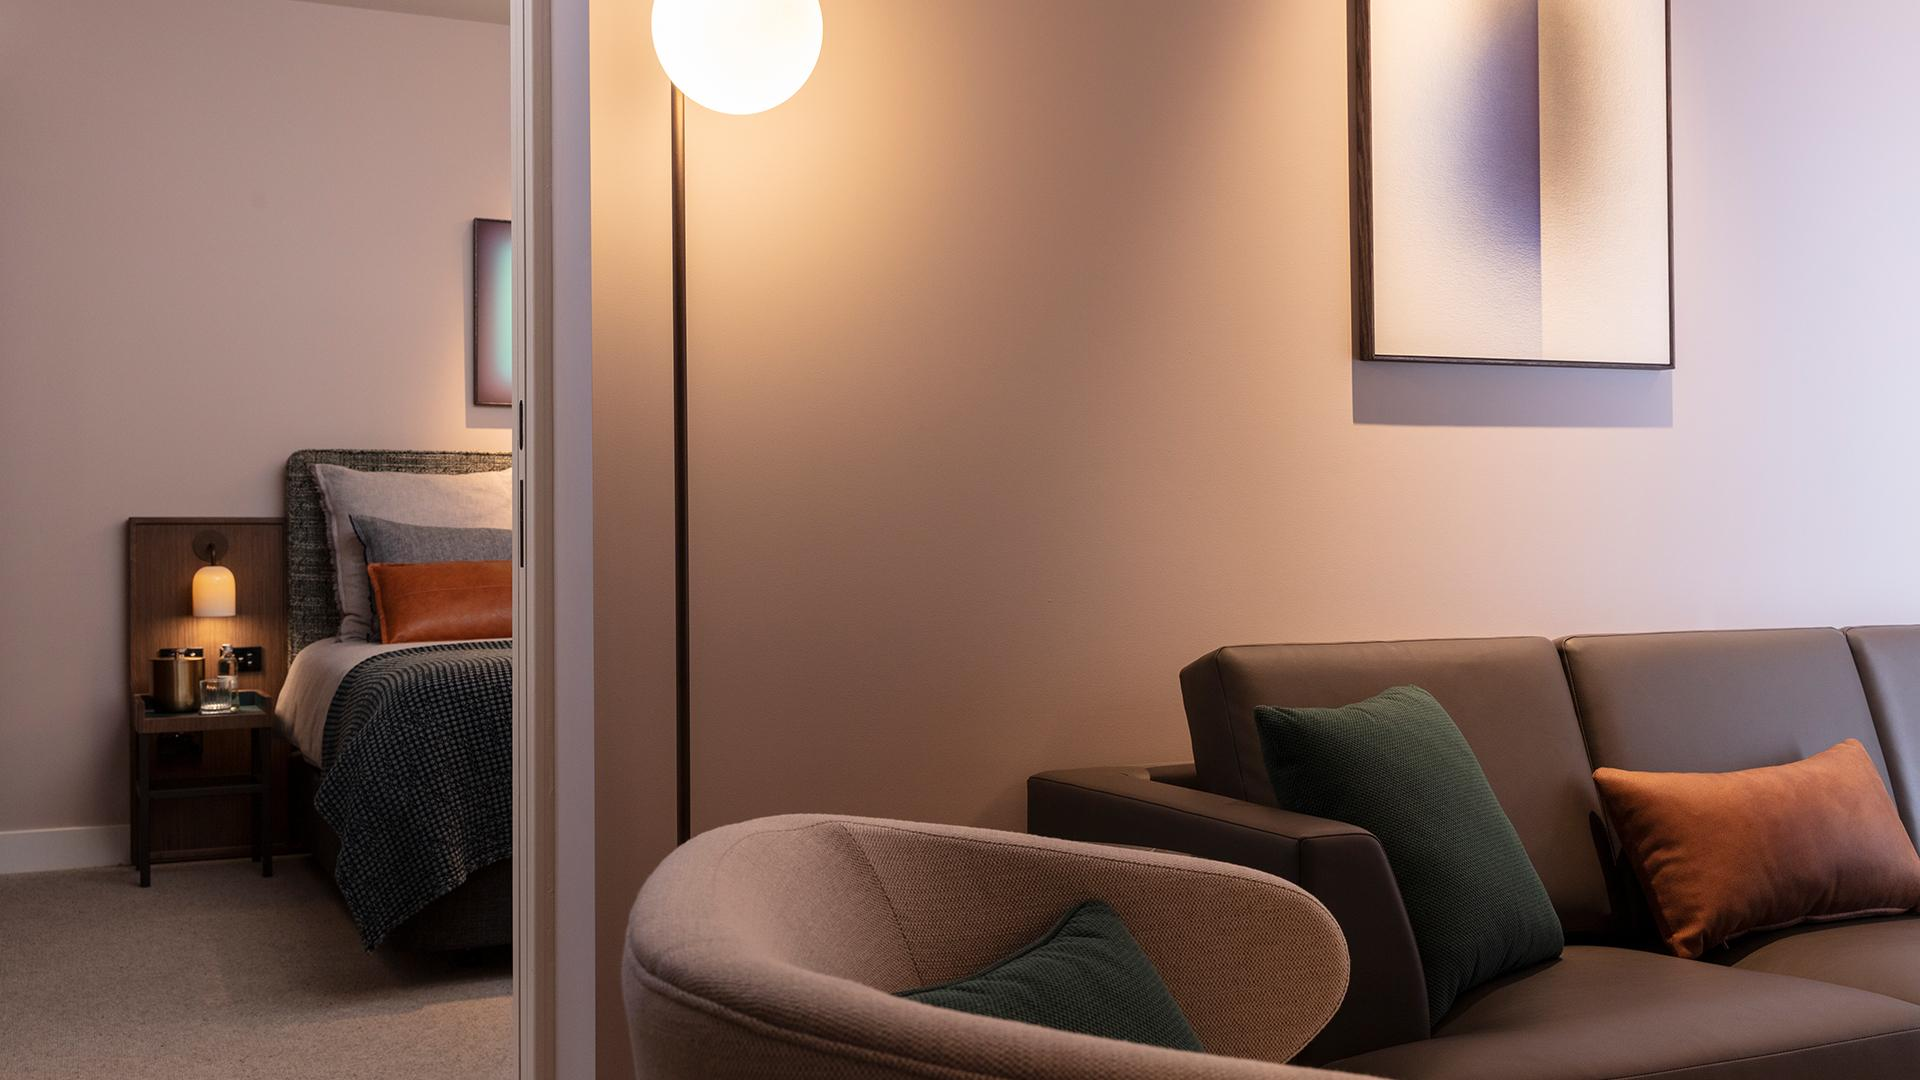 Club Two-Bedroom Suite image 1 at Next Hotel Melbourne by Melbourne City, Victoria, Australia